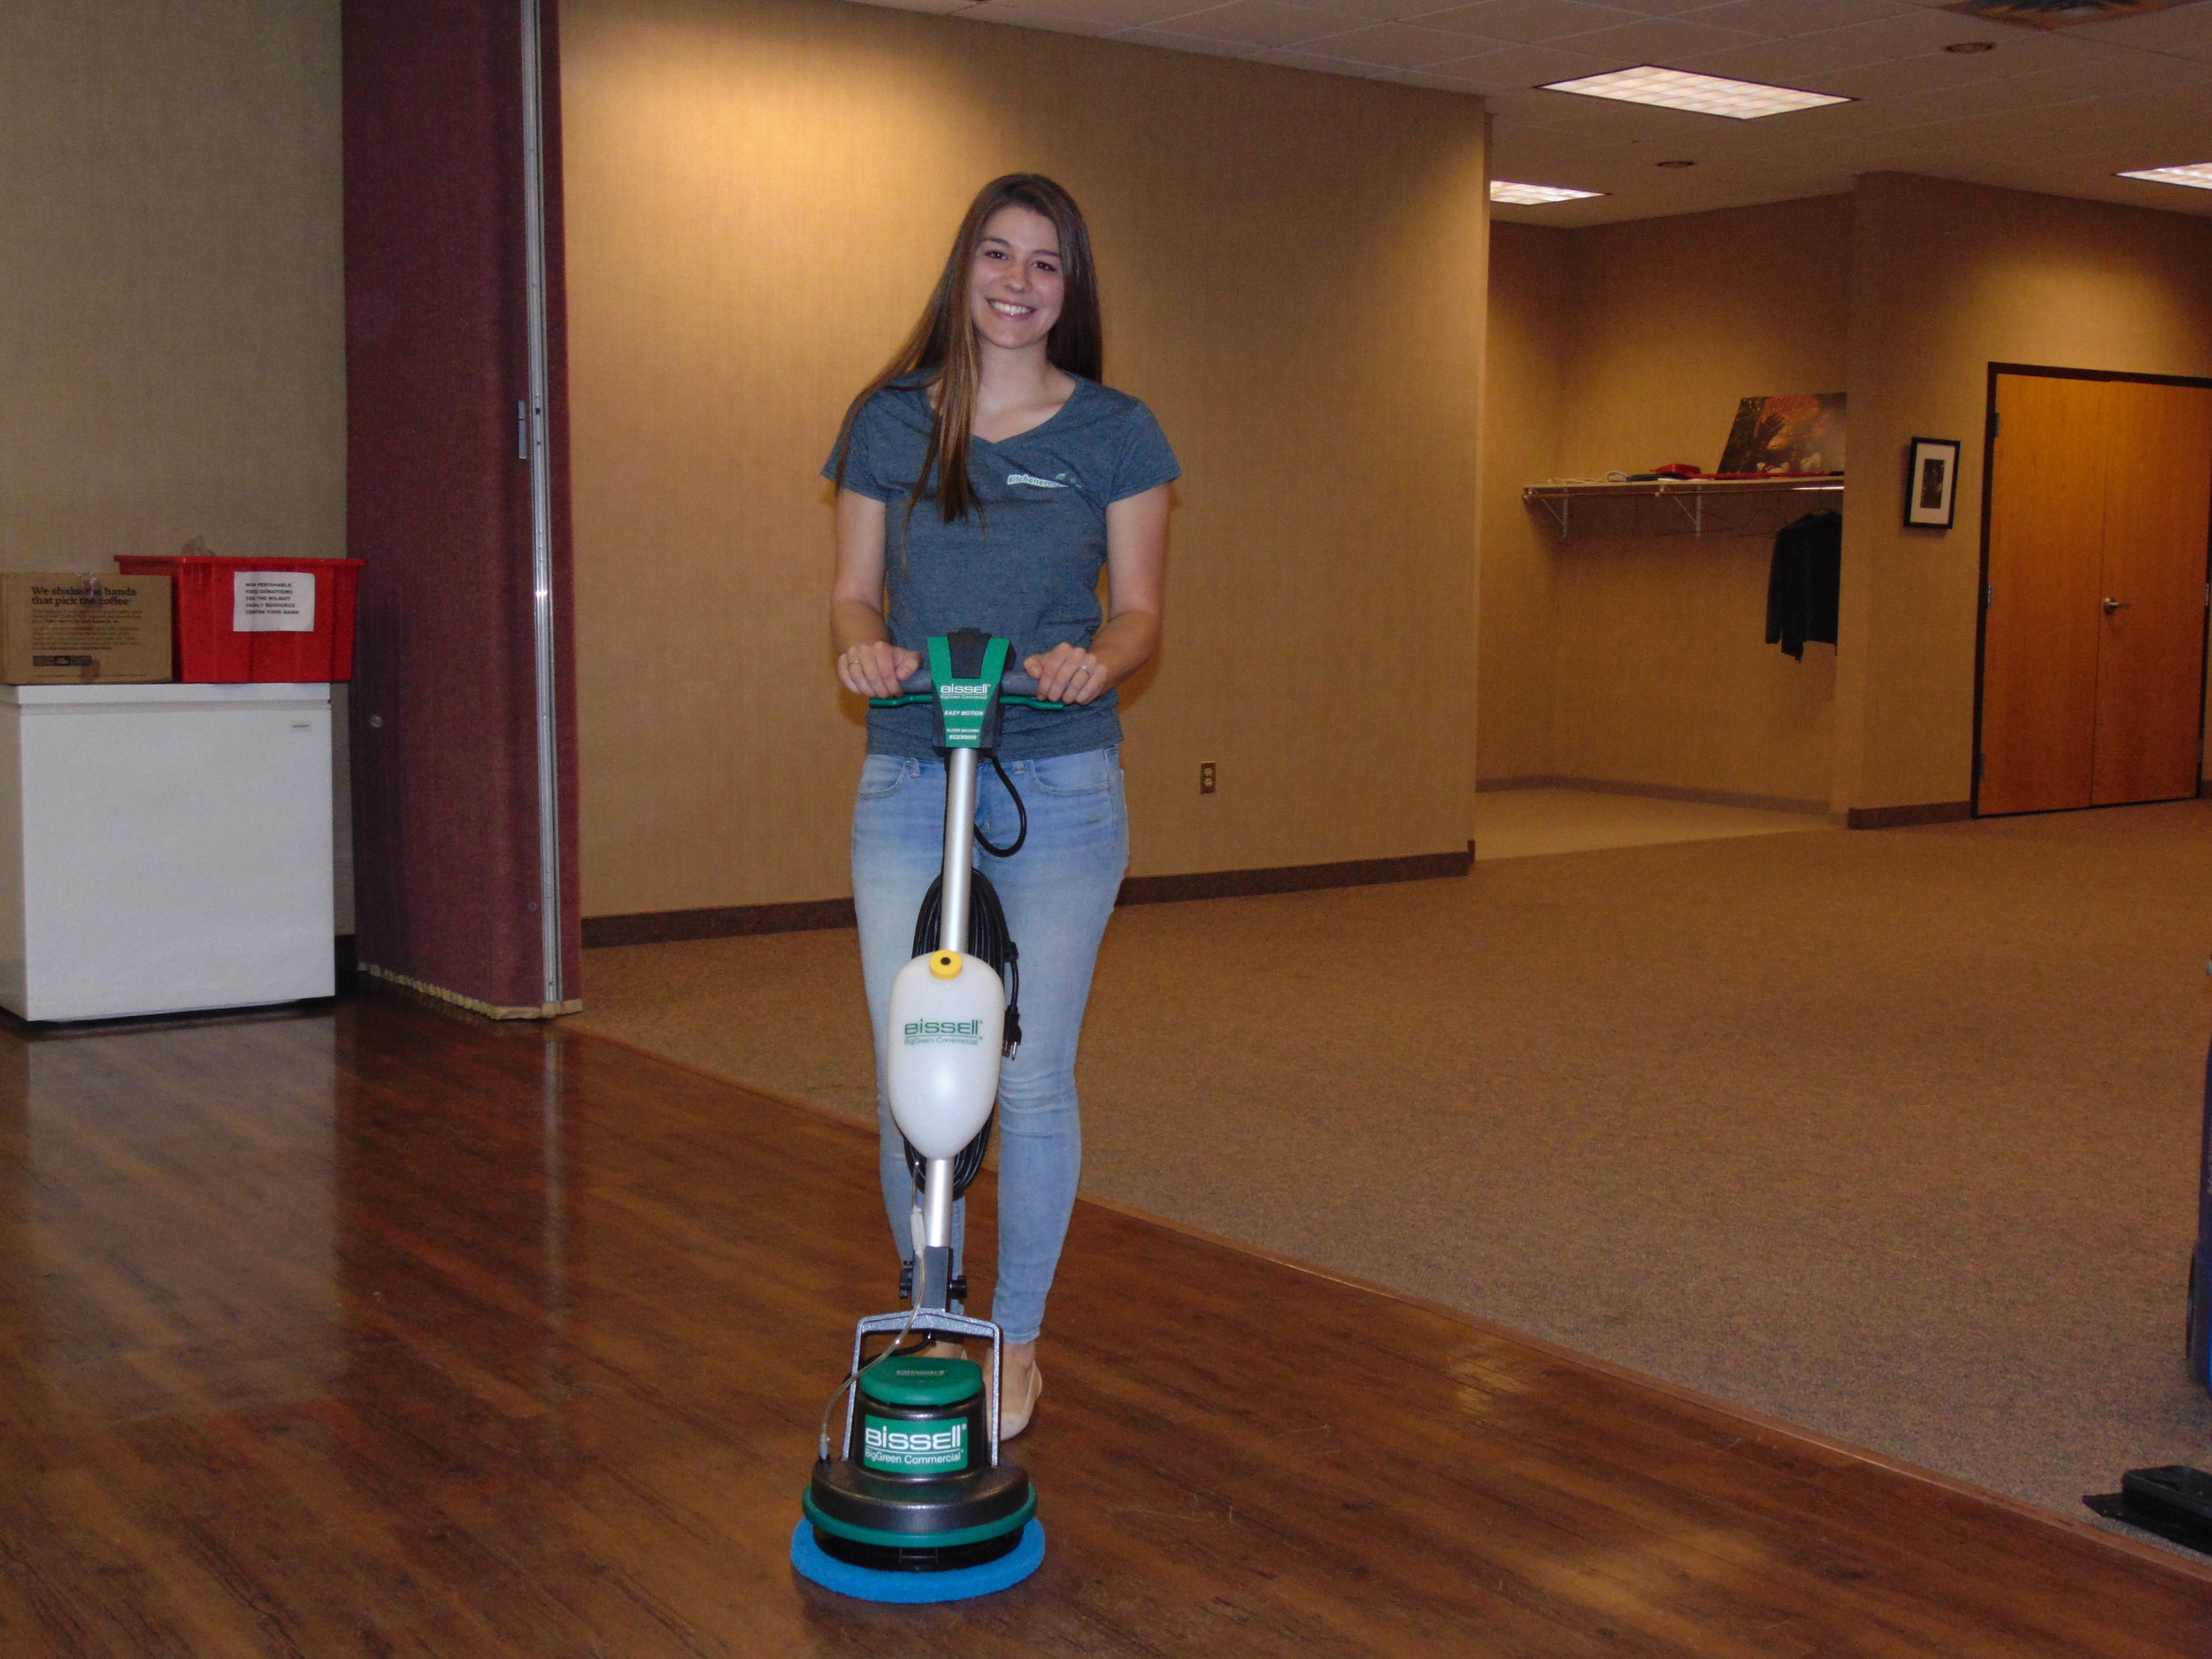 kitchener clean offers many types of floor care